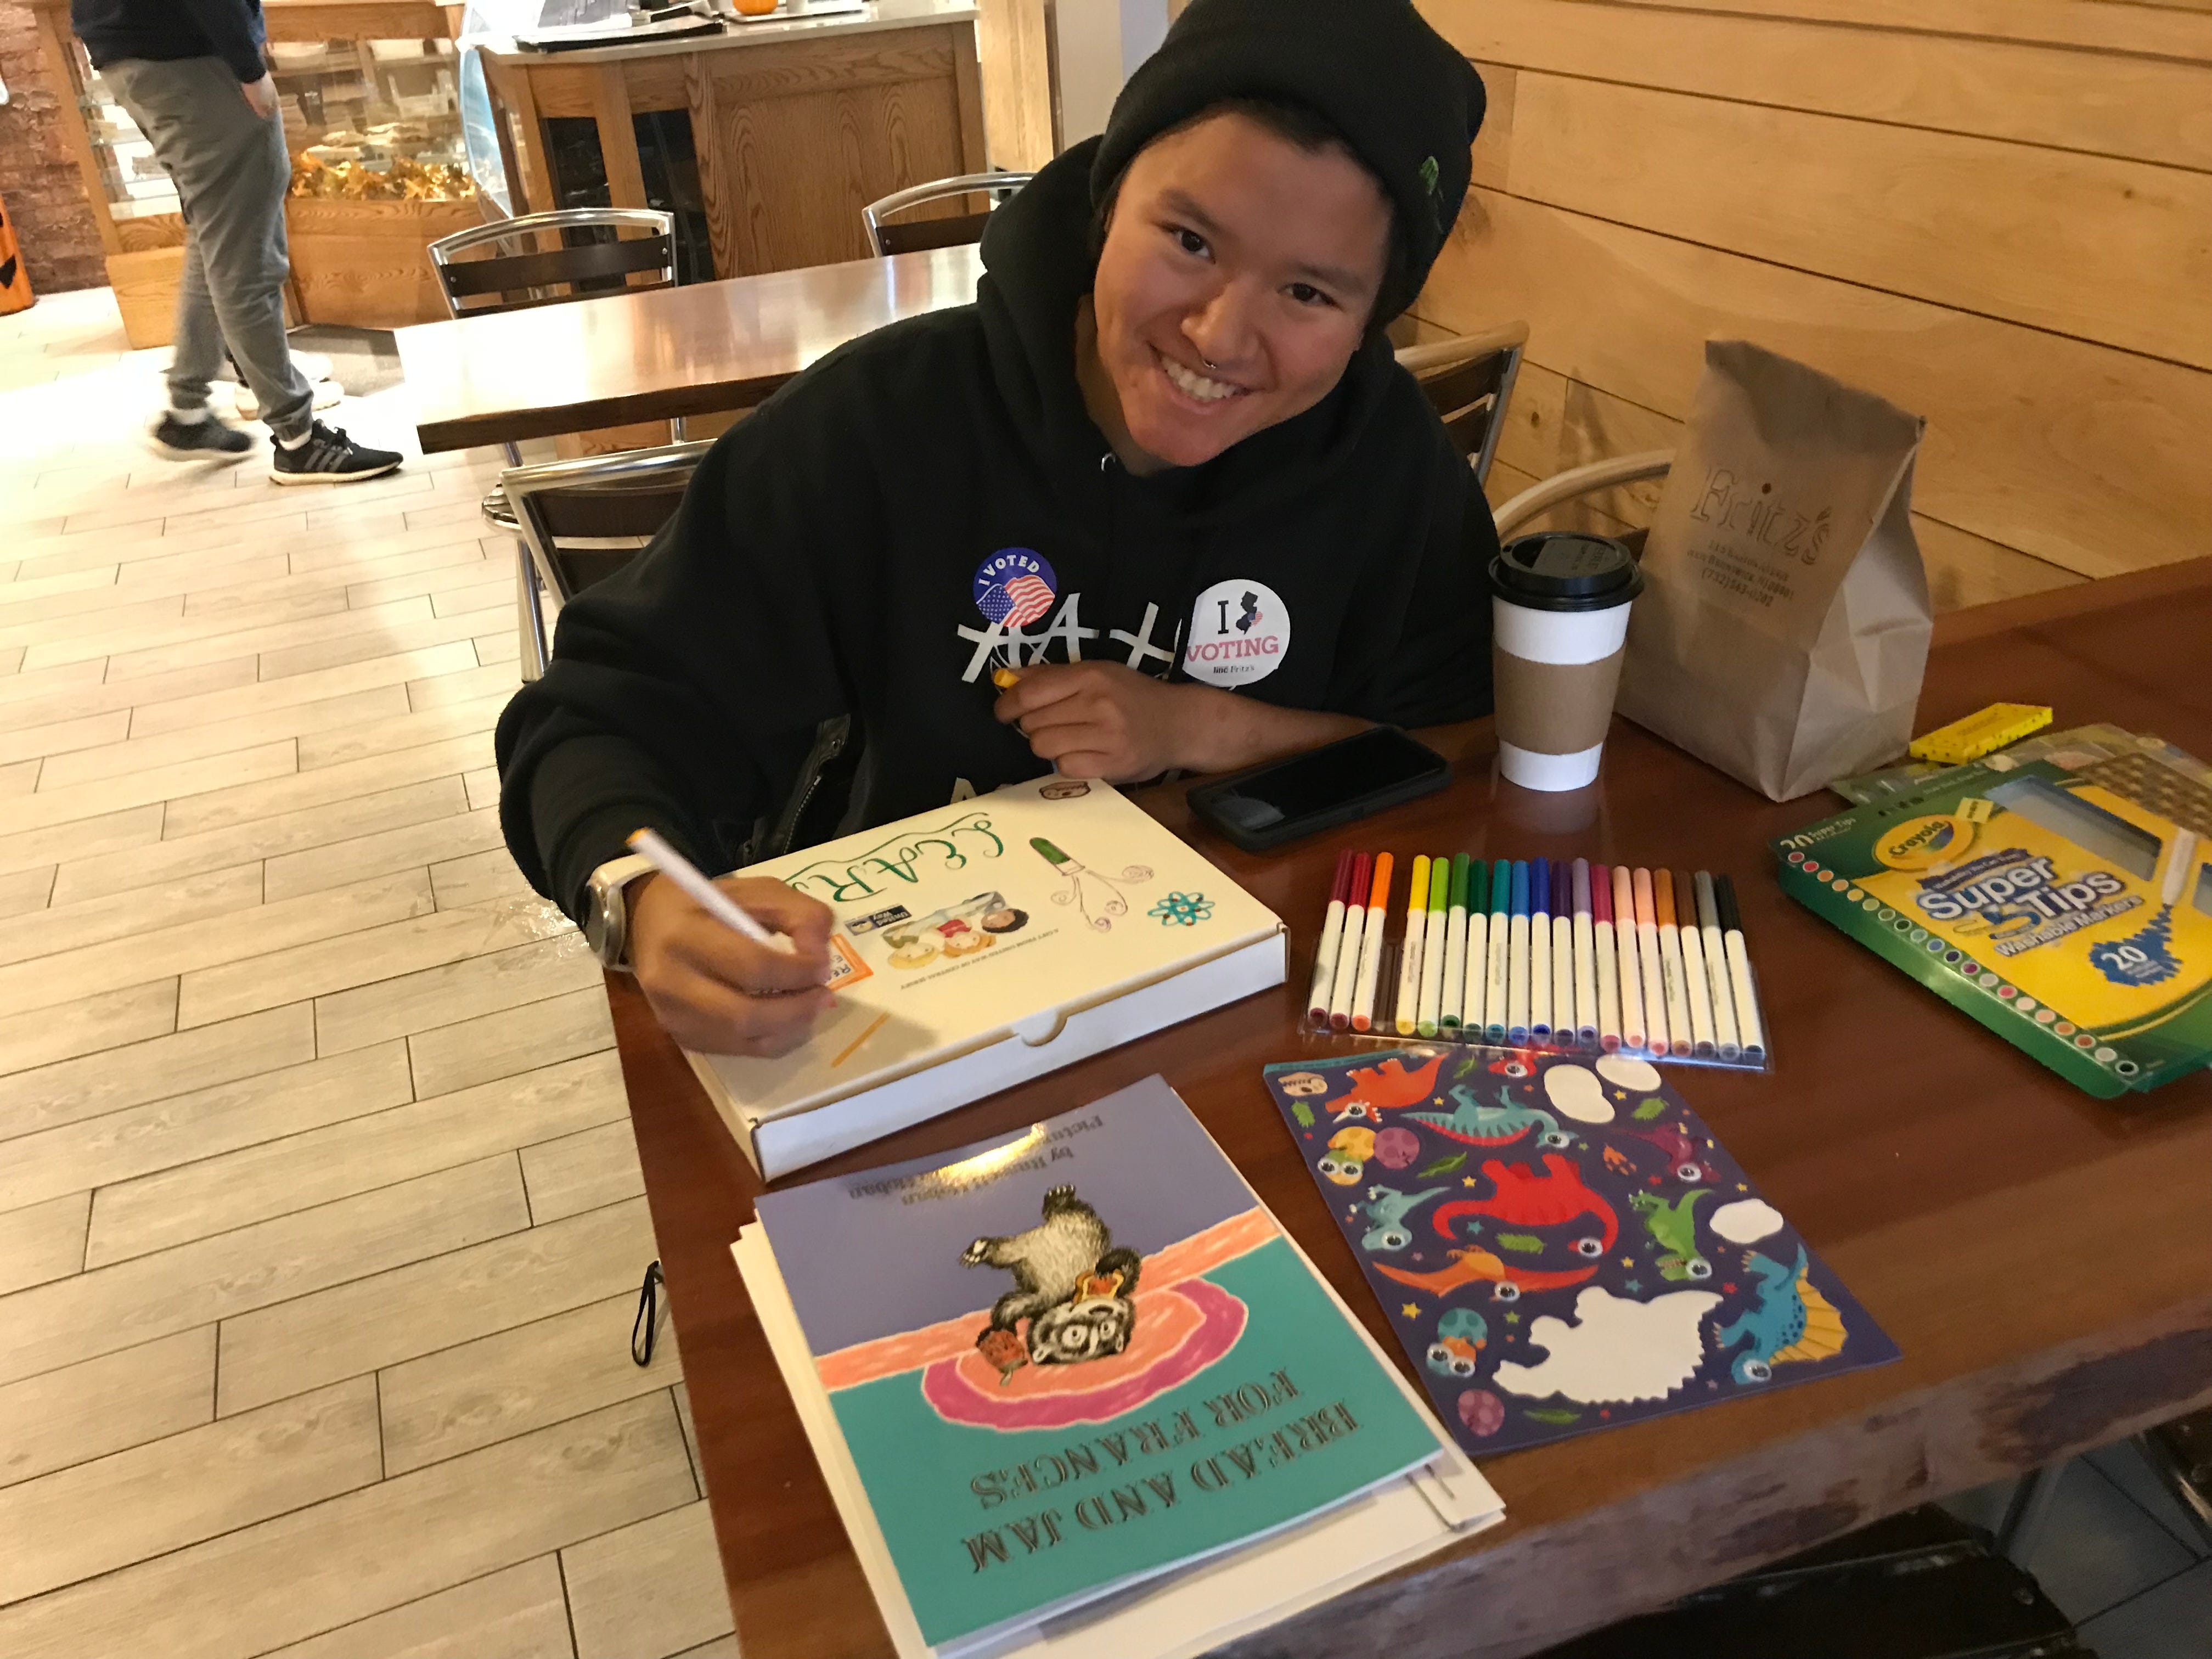 Rutgers University junior Michala Rose works on literacy kits at the Voting Party hosted by the United Way of Central Jersey in New Brunswick.